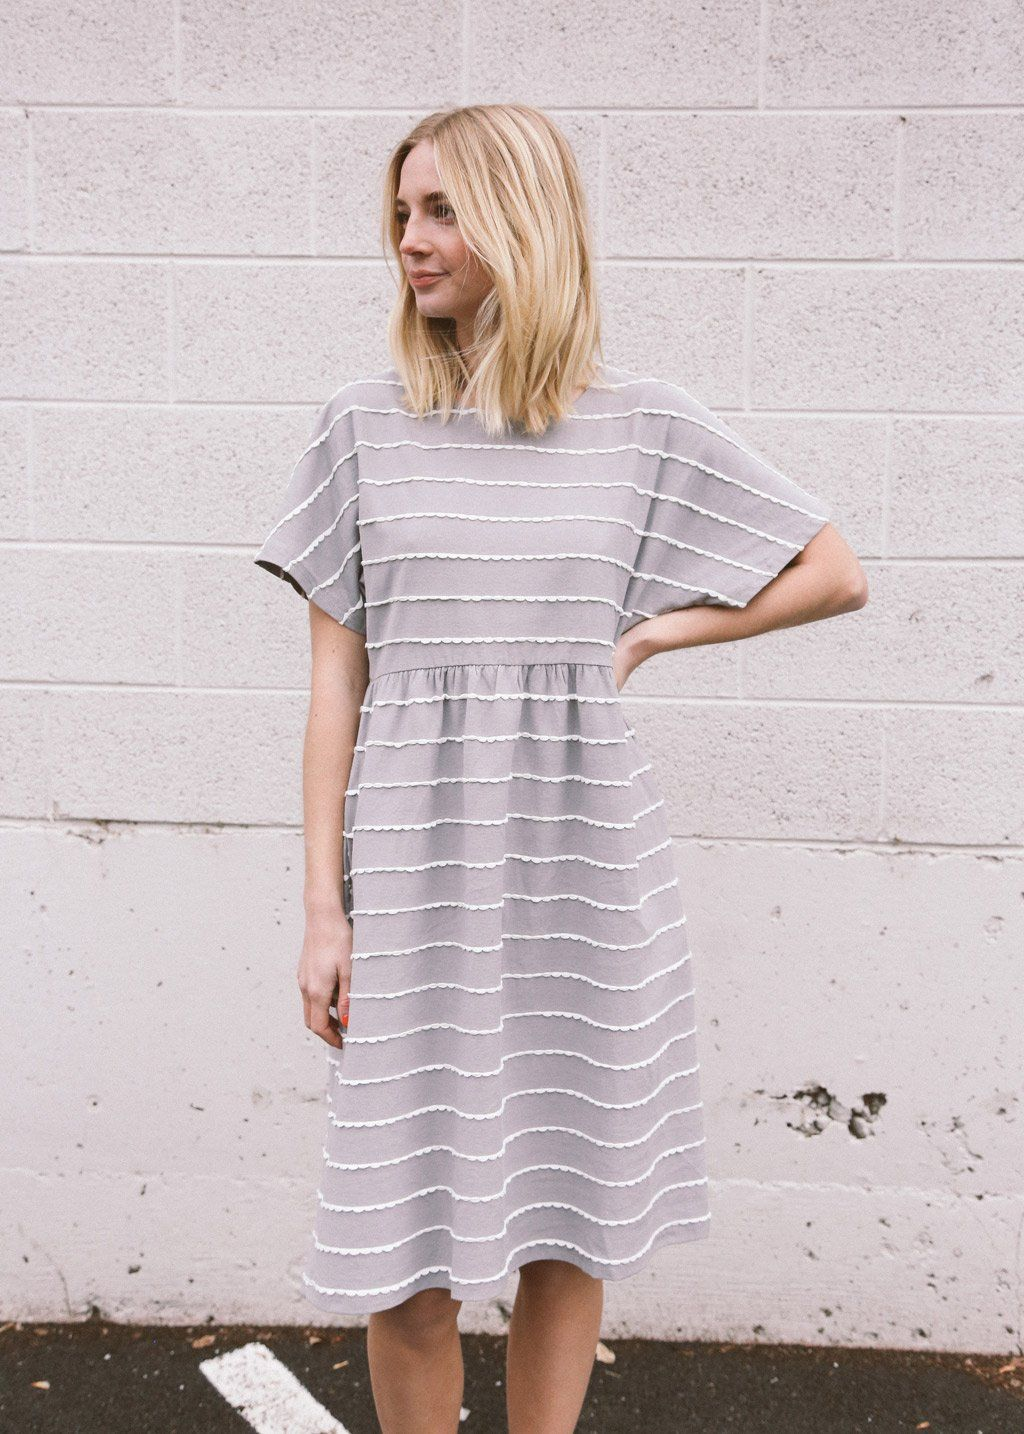 49c29f9e1c4 Shiloh Dress in Cloud in 2019